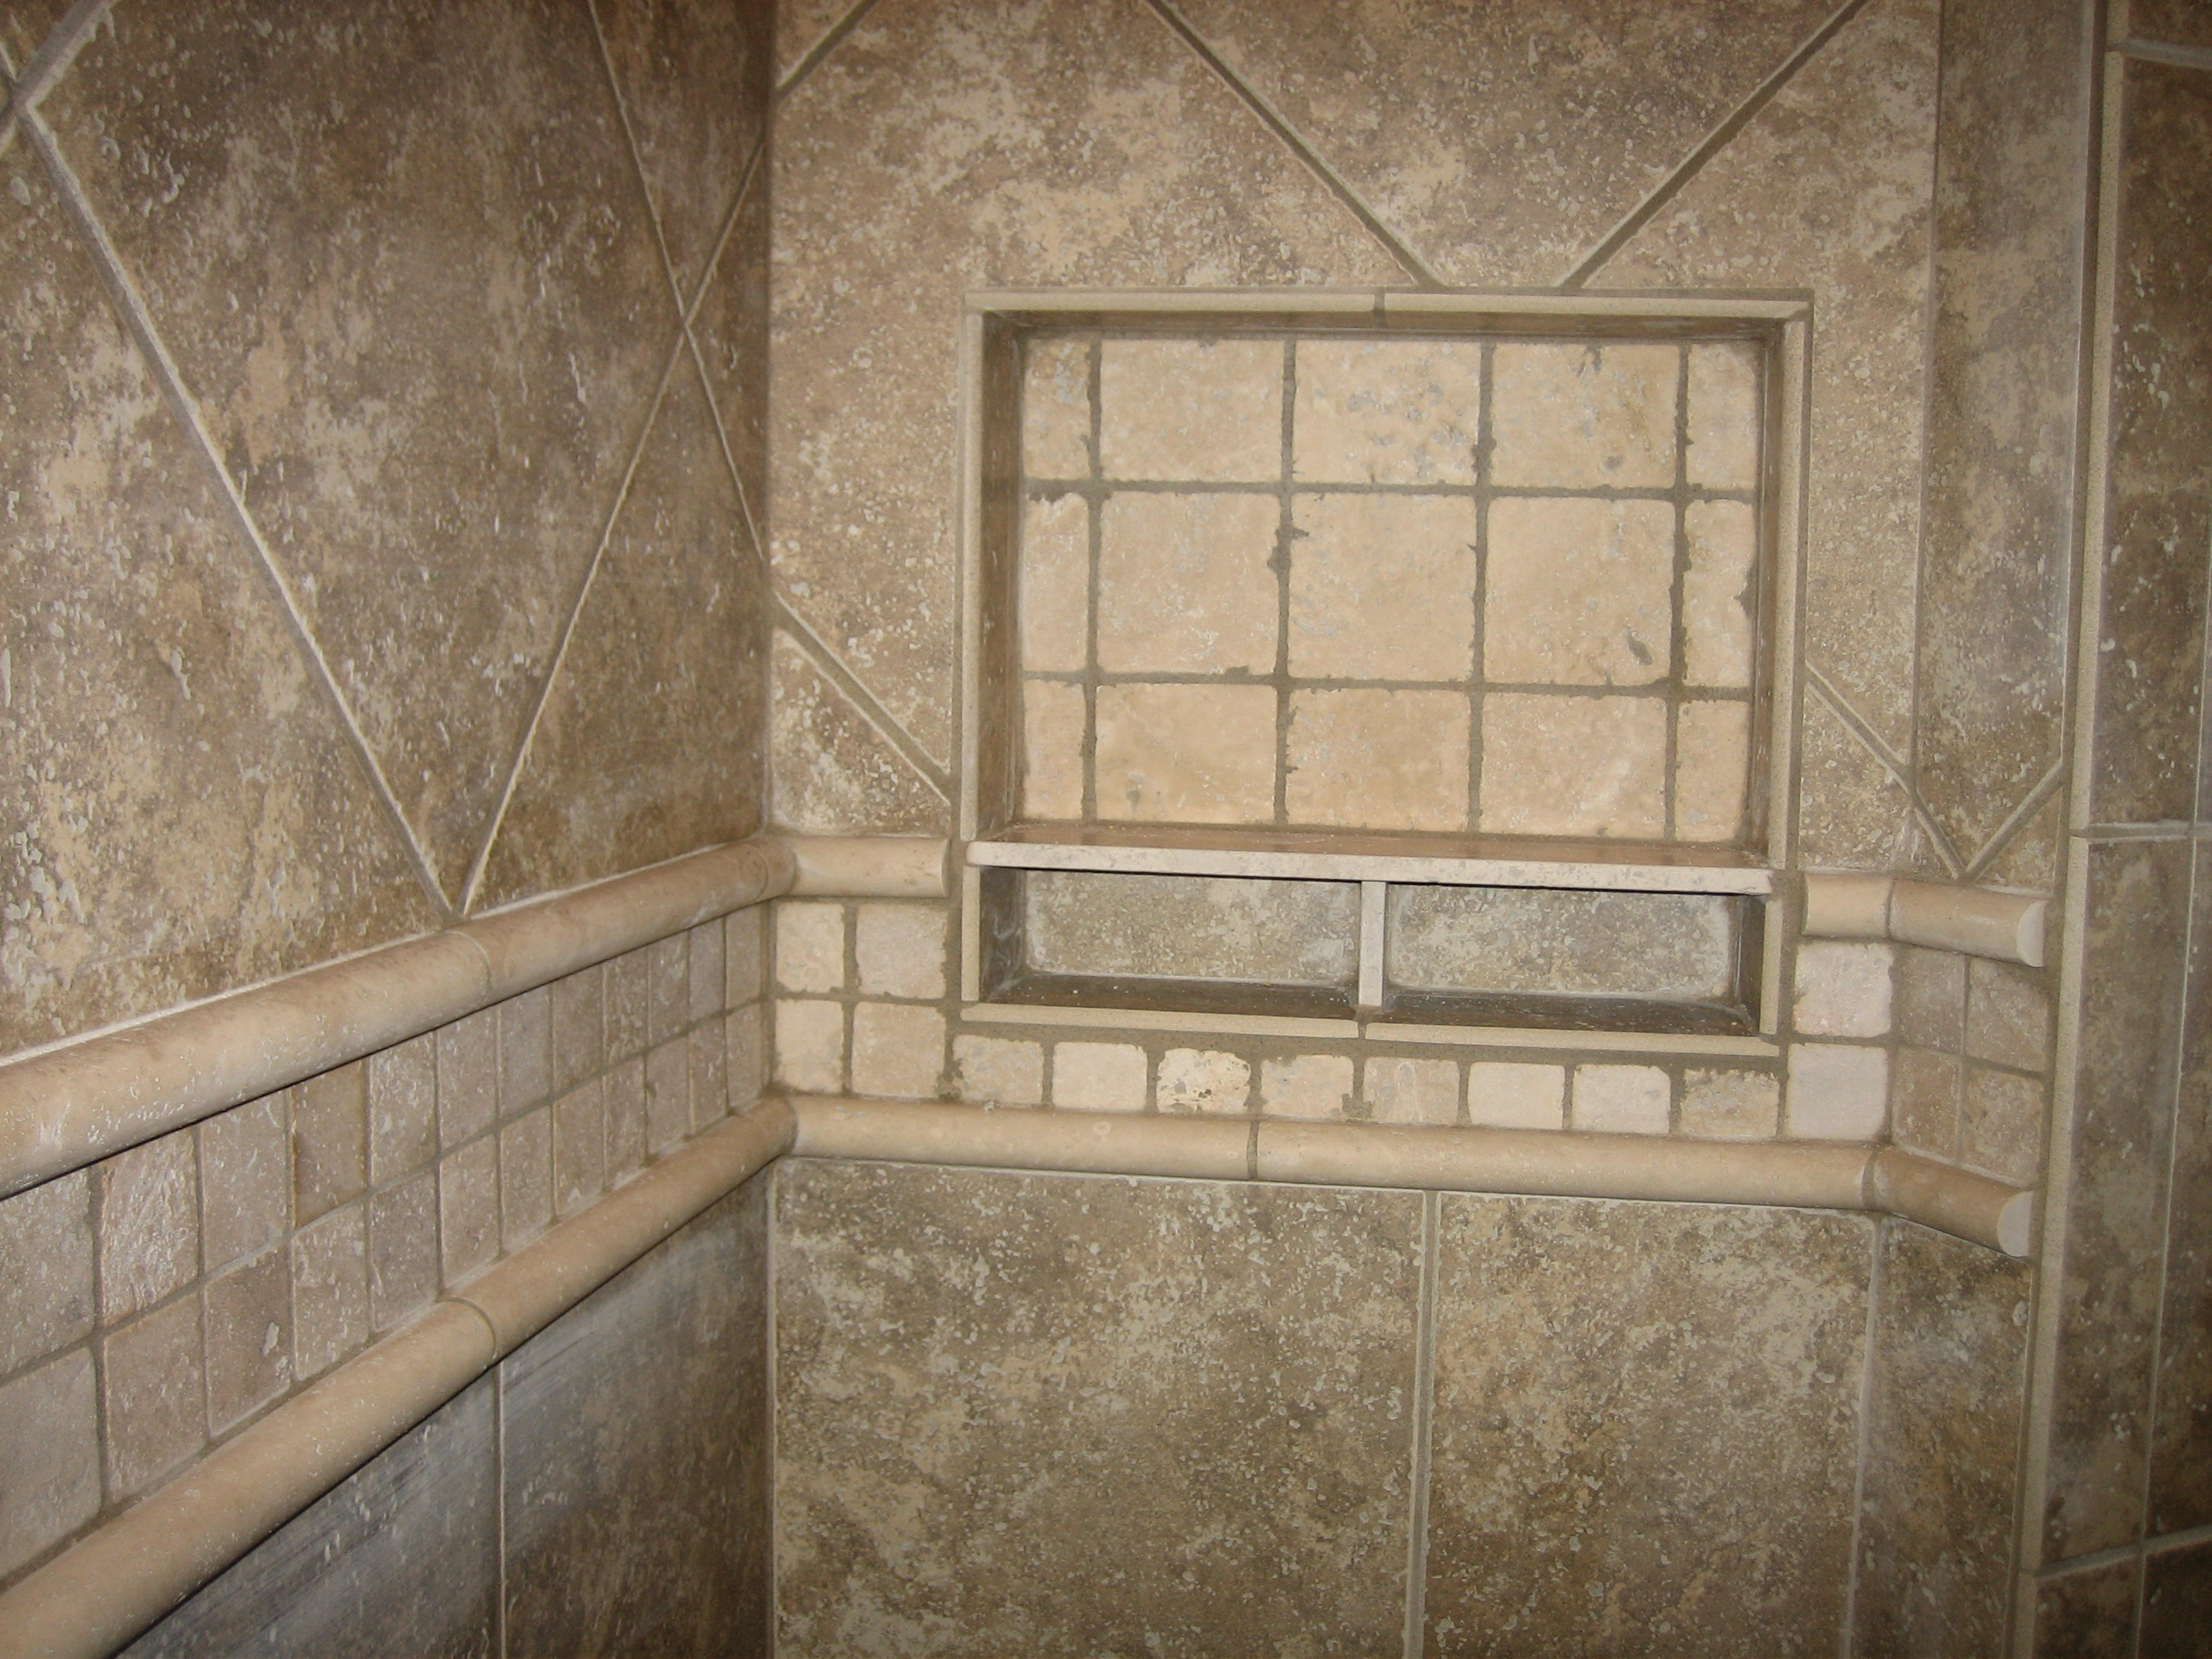 Bathroom Tiles Pictures Picturesshowers And Tub Surrounds Rk Tile And Stone